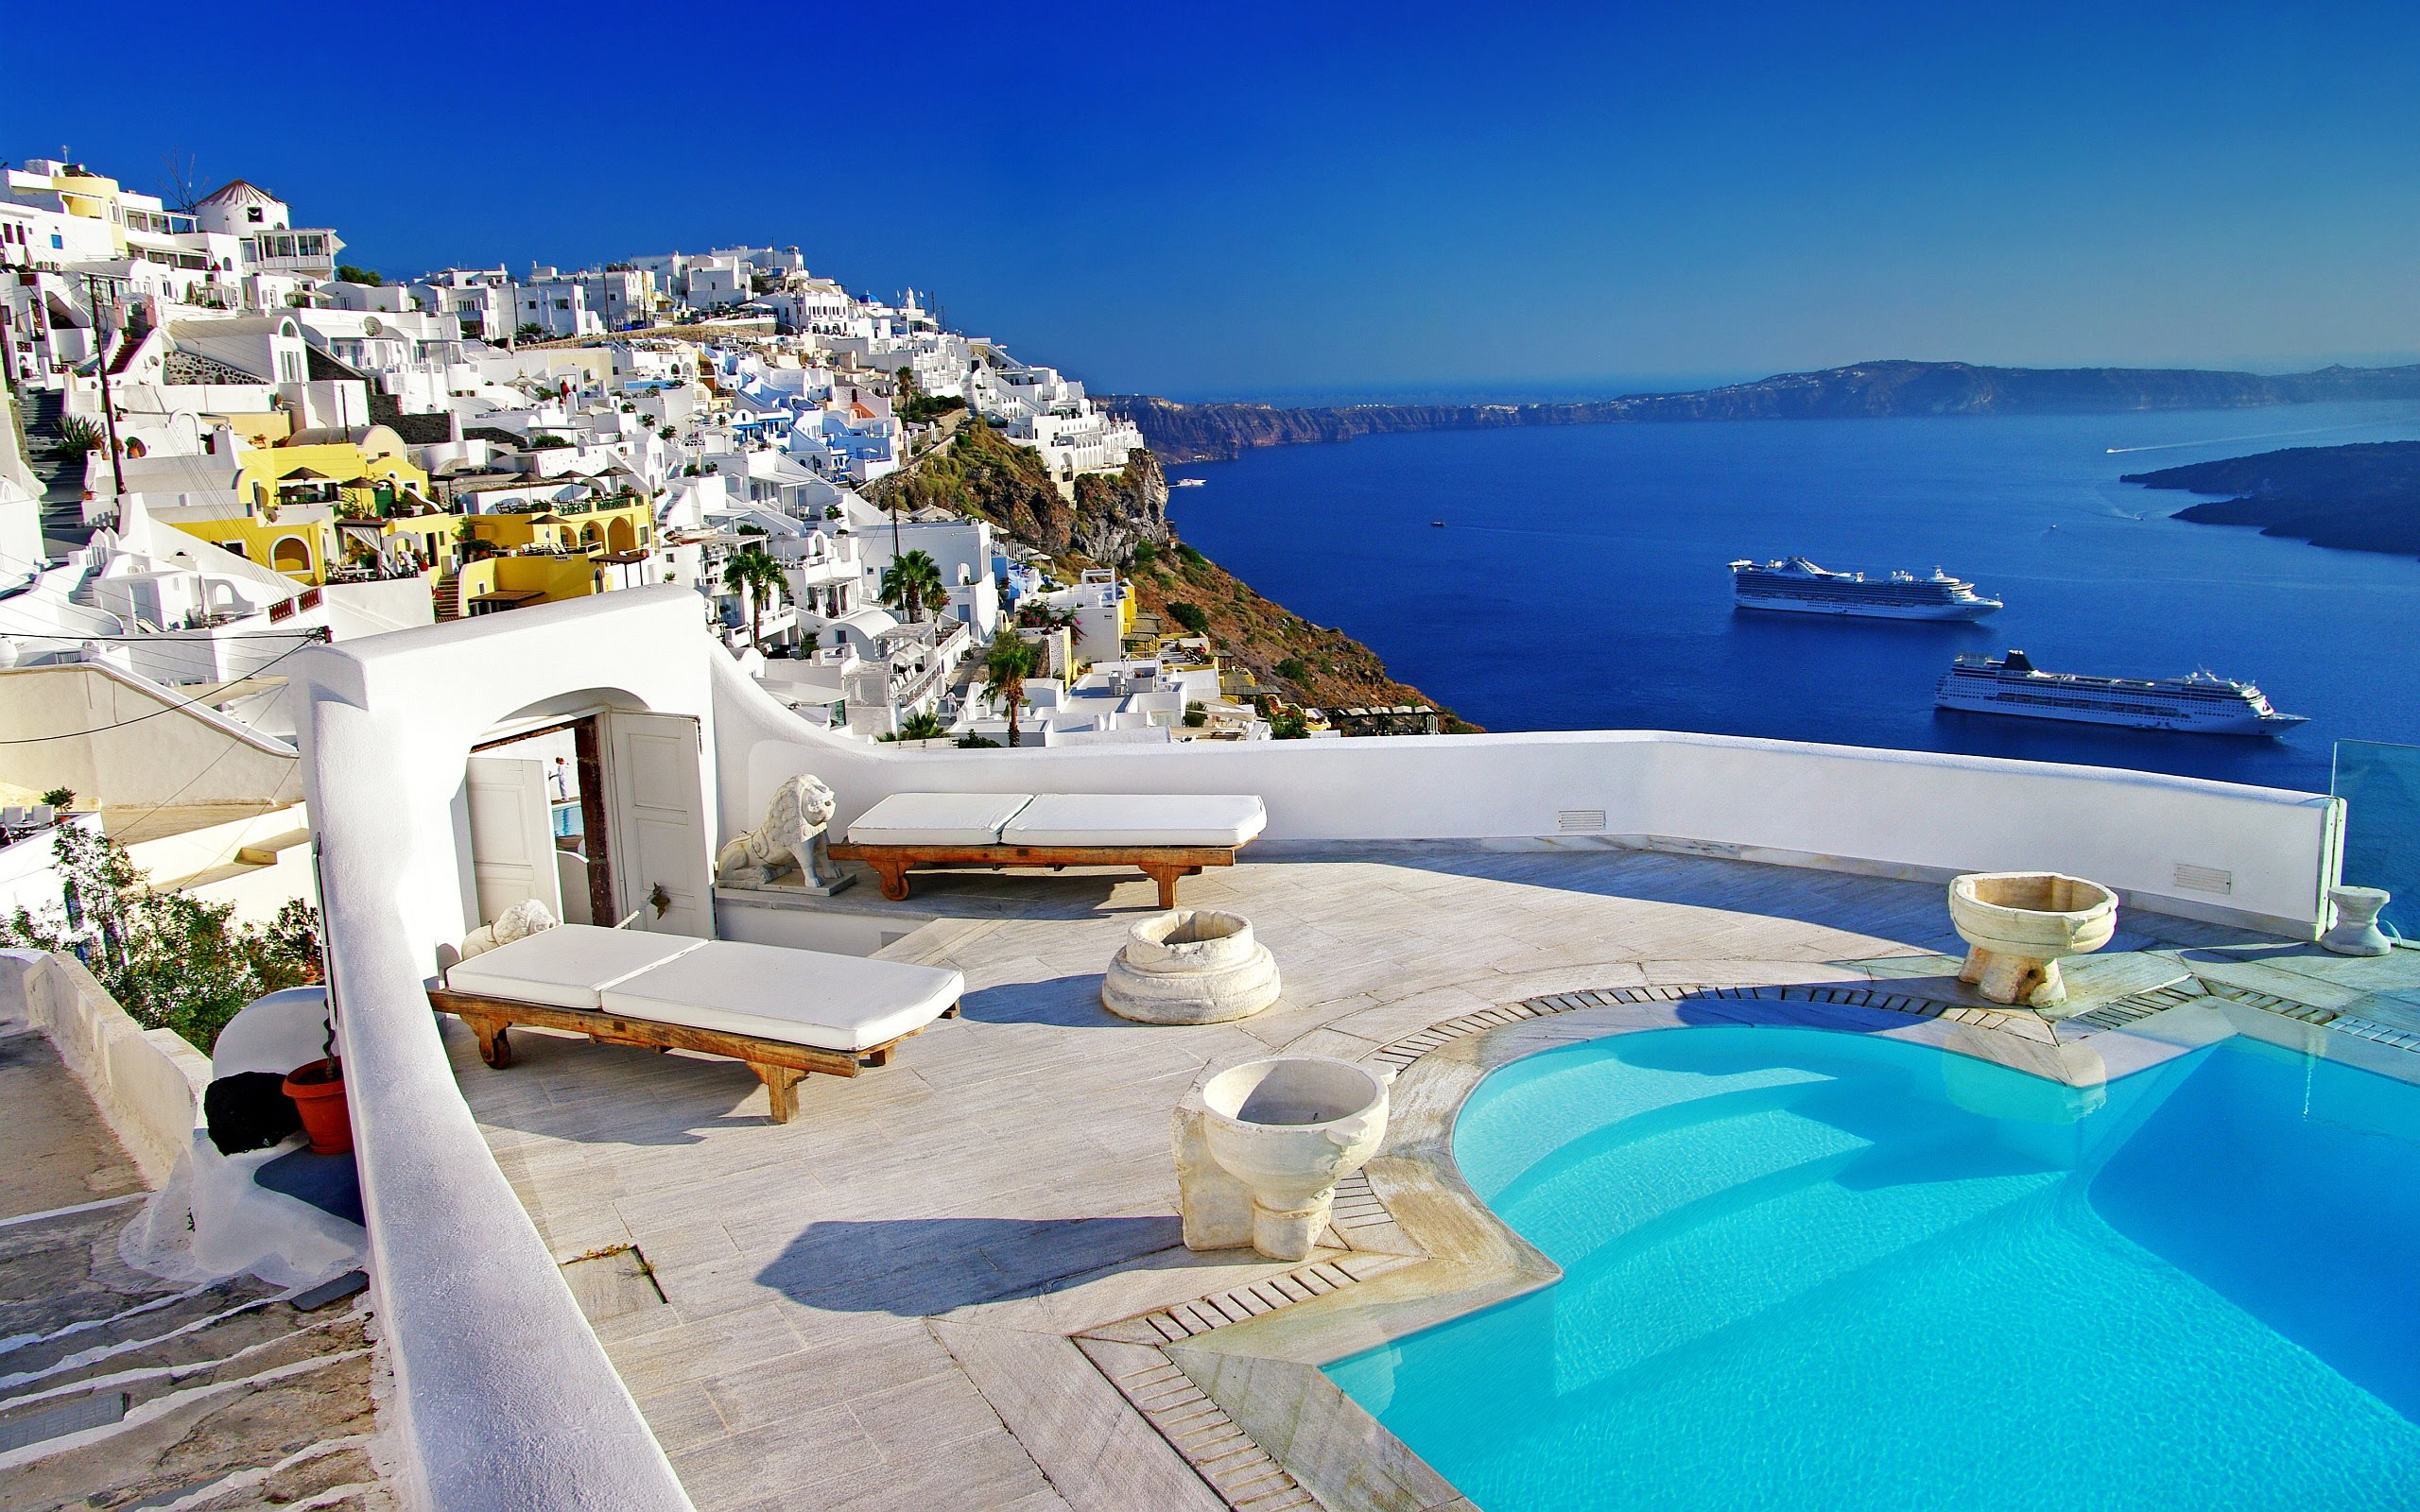 Santorini travel guide for first-time visitors - Best Places to Visit in Europe - planningforeurope.com (2)